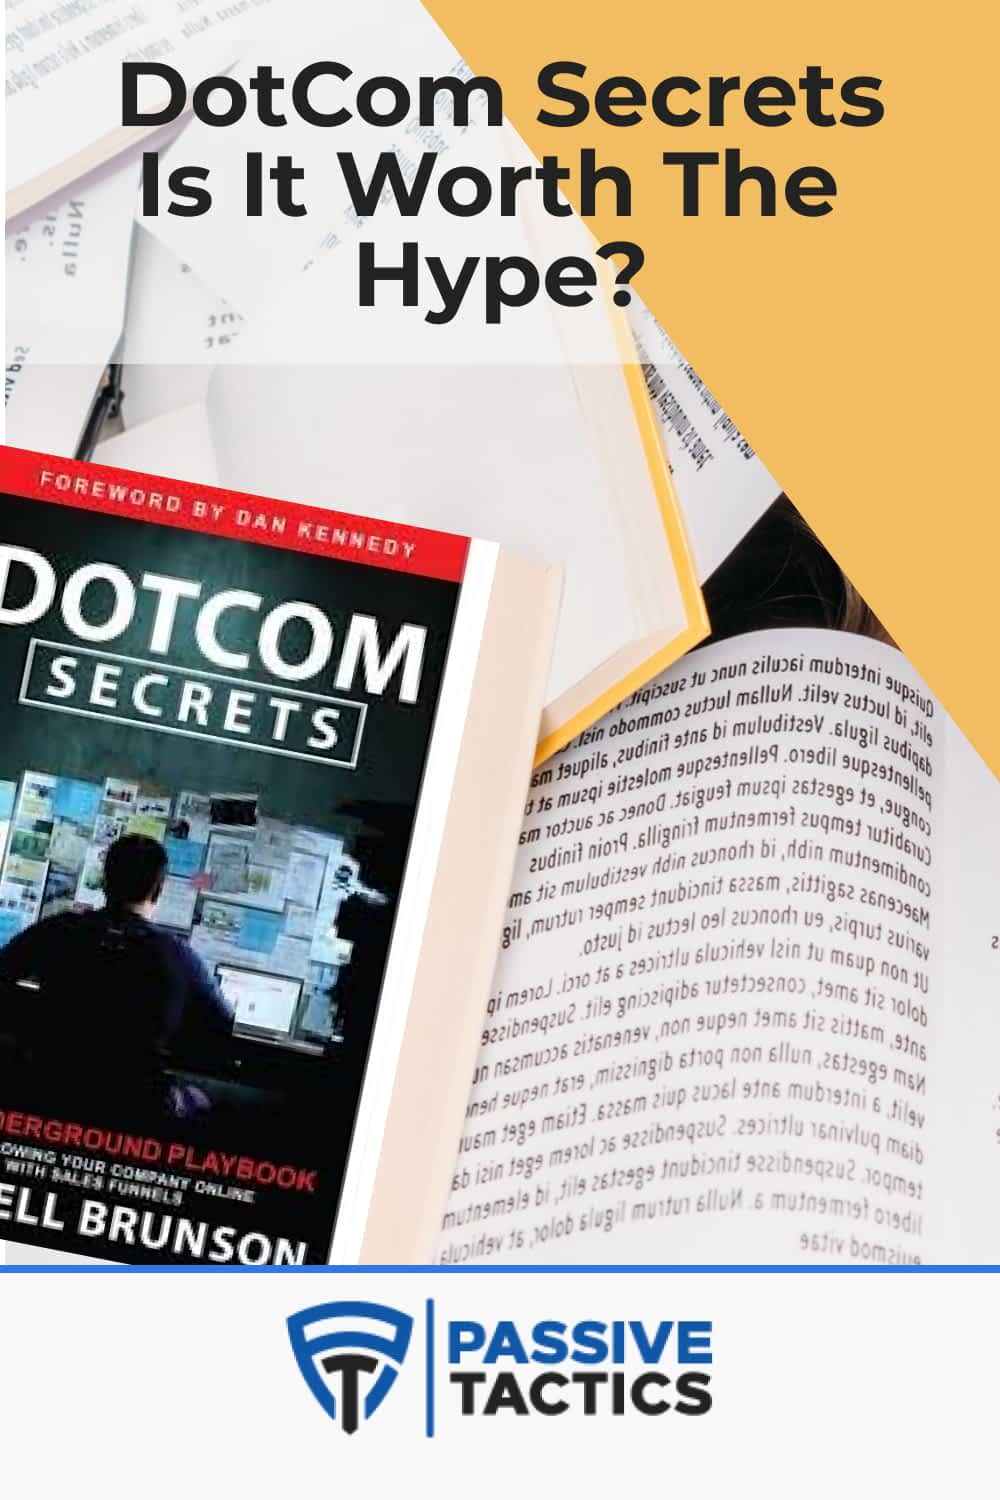 DotCom Secrets Review in 2021: The Ultimate Sales Funnels Guide